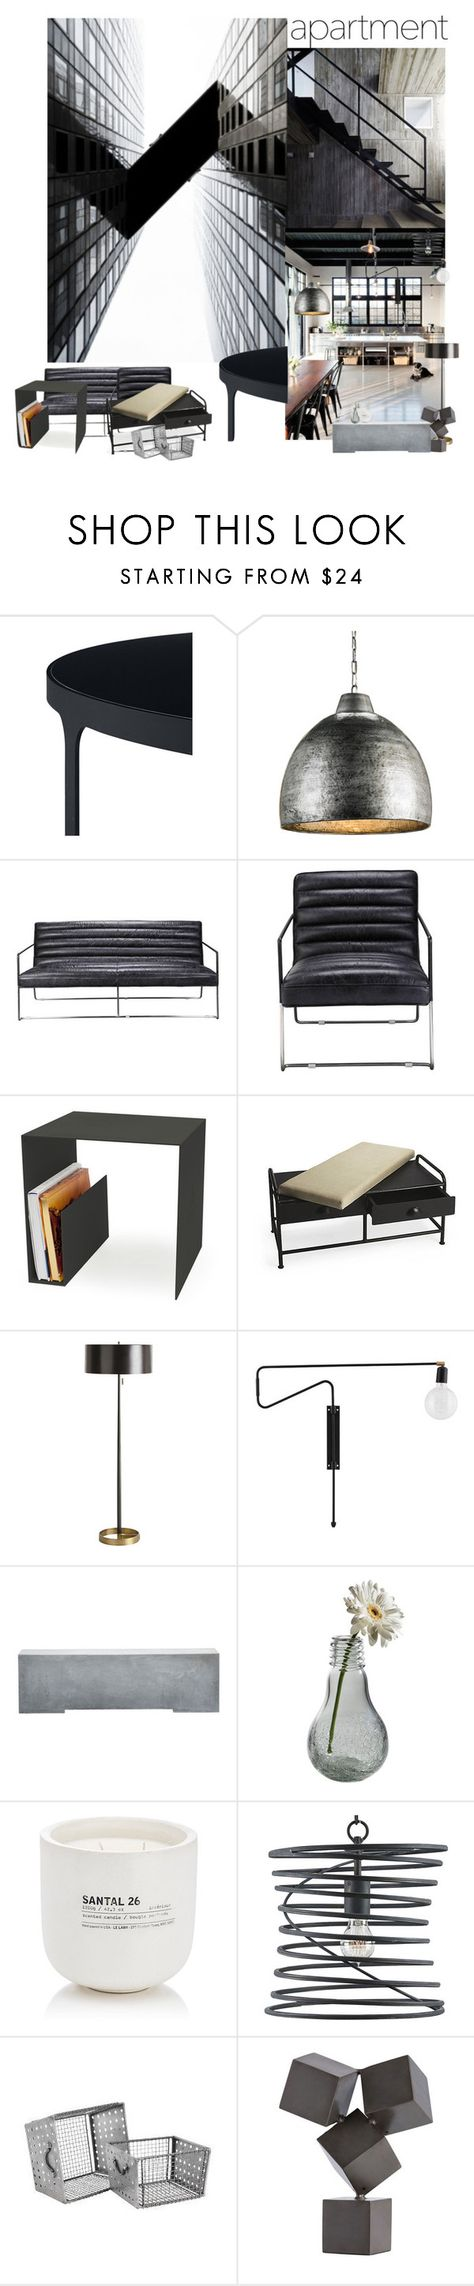 """""""High Rise (Top Set)"""" by sue-mes ❤ liked on Polyvore featuring interior, interiors, interior design, home, home decor, interior decorating, Moe's Home Collection, Röshults, Ryder and Dot & Bo"""